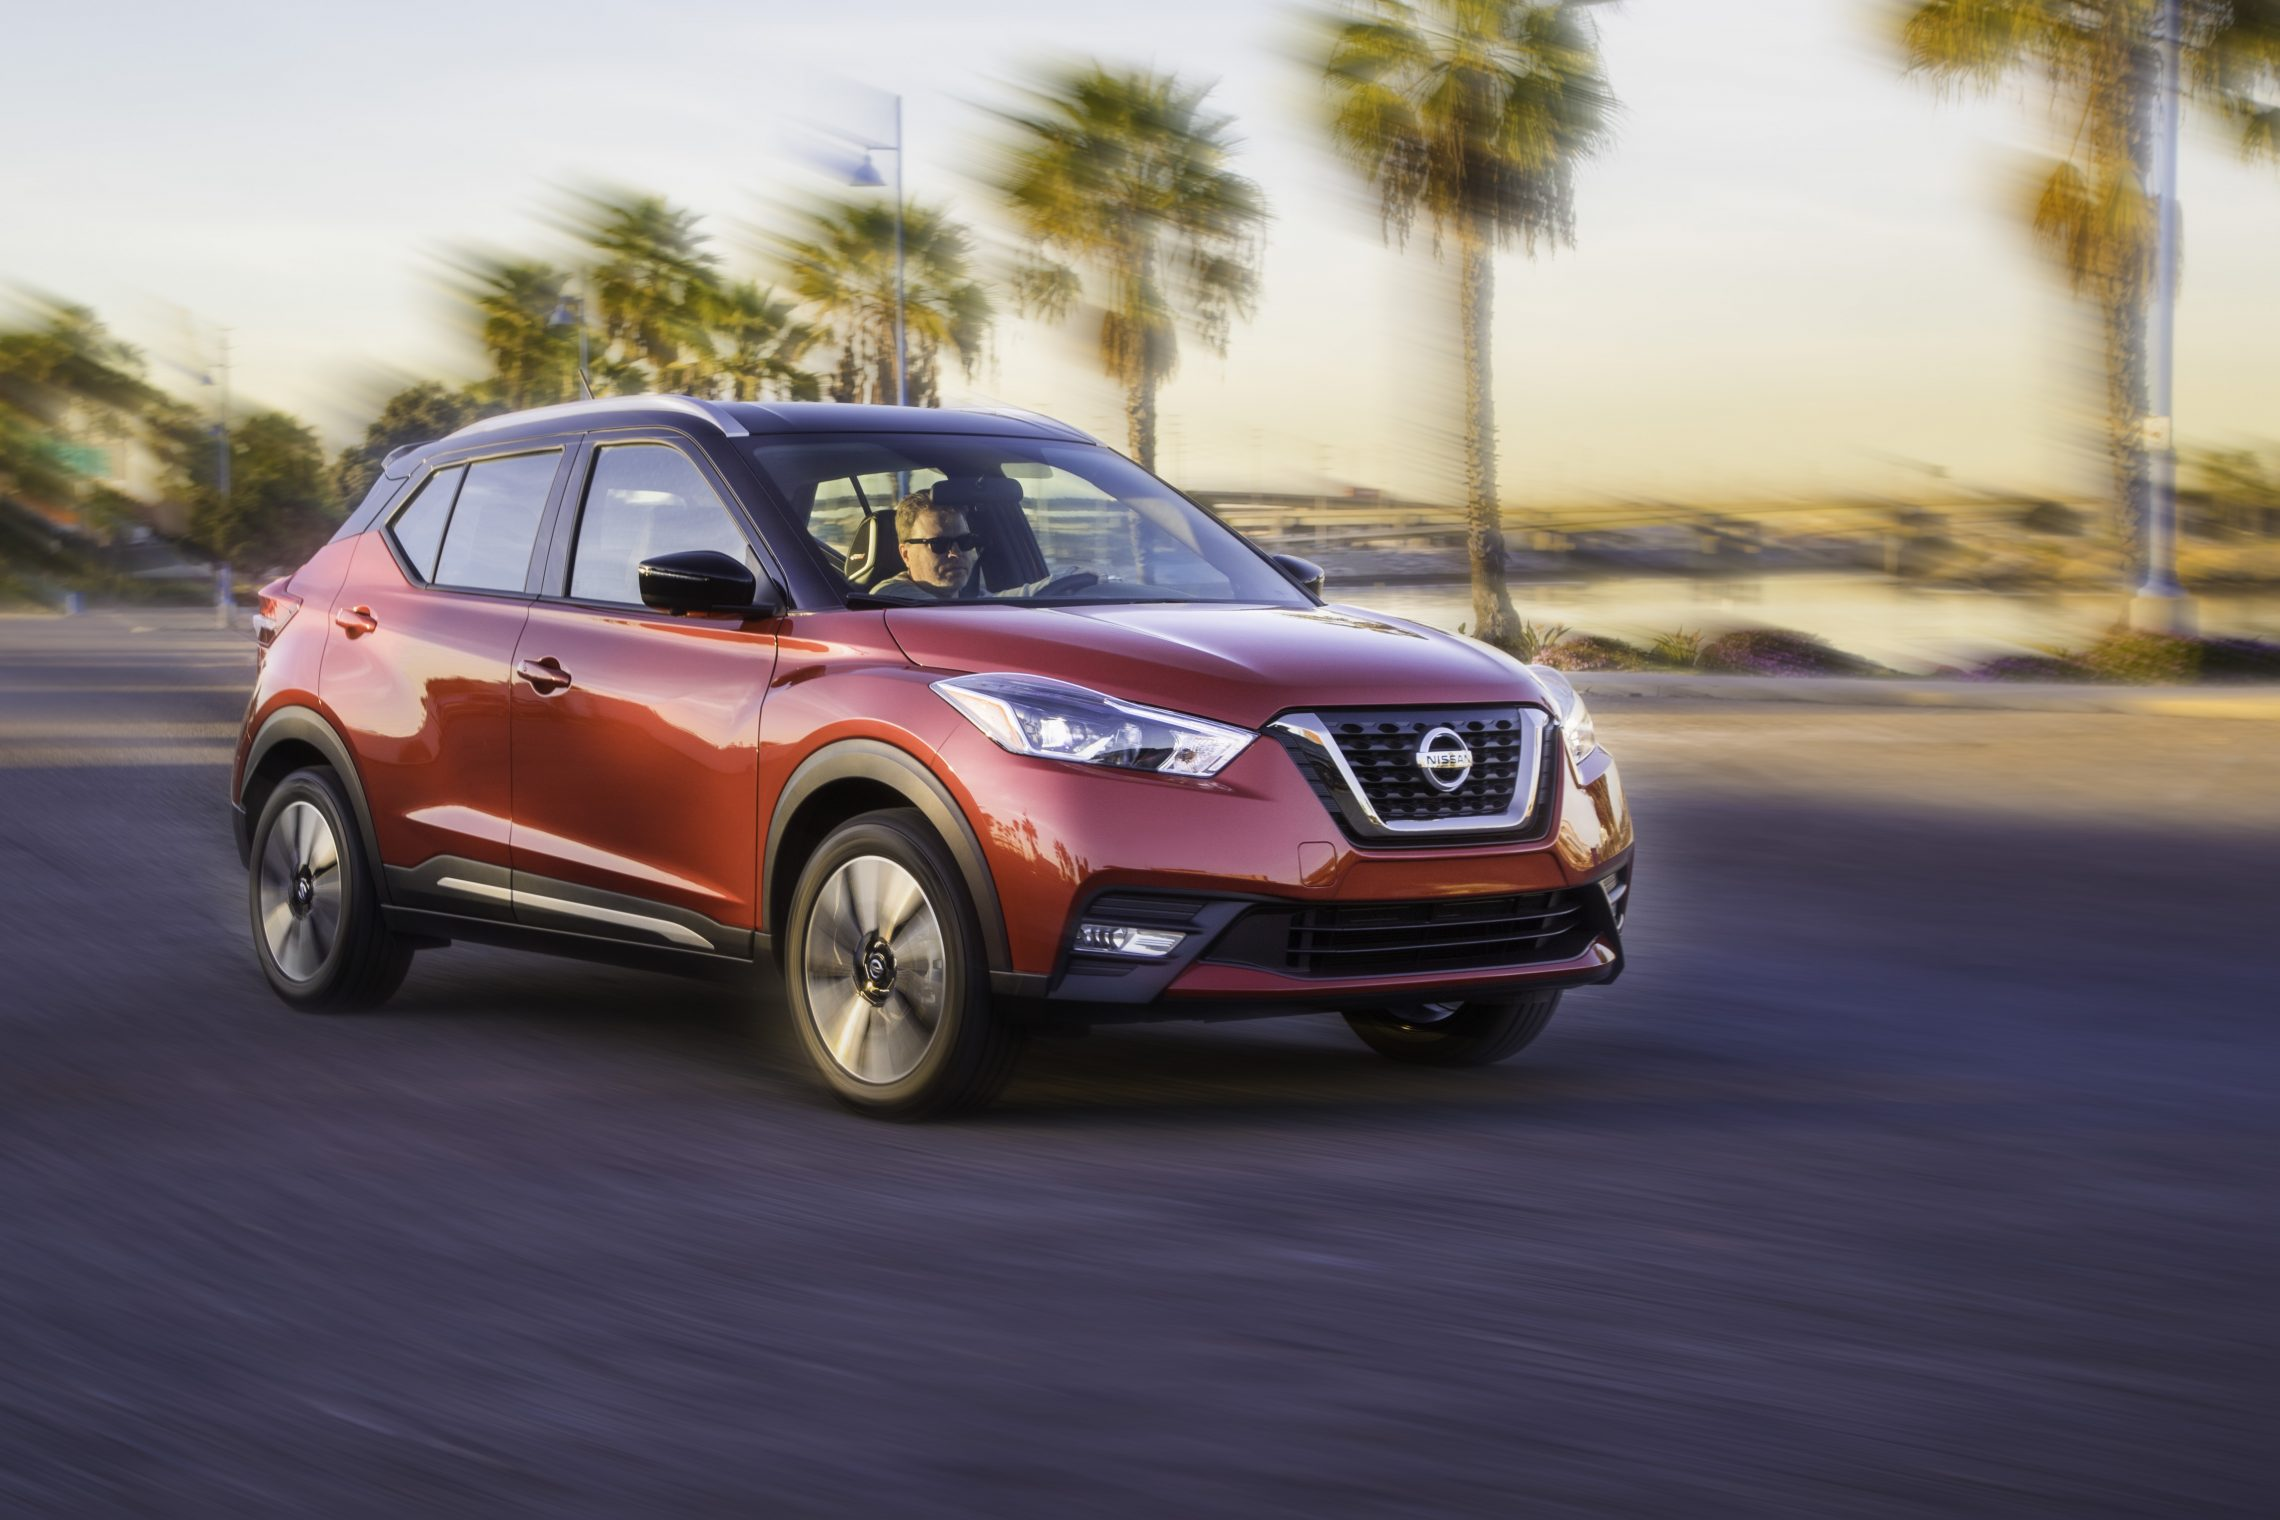 2019 Nissan Kicks – Automotive Review